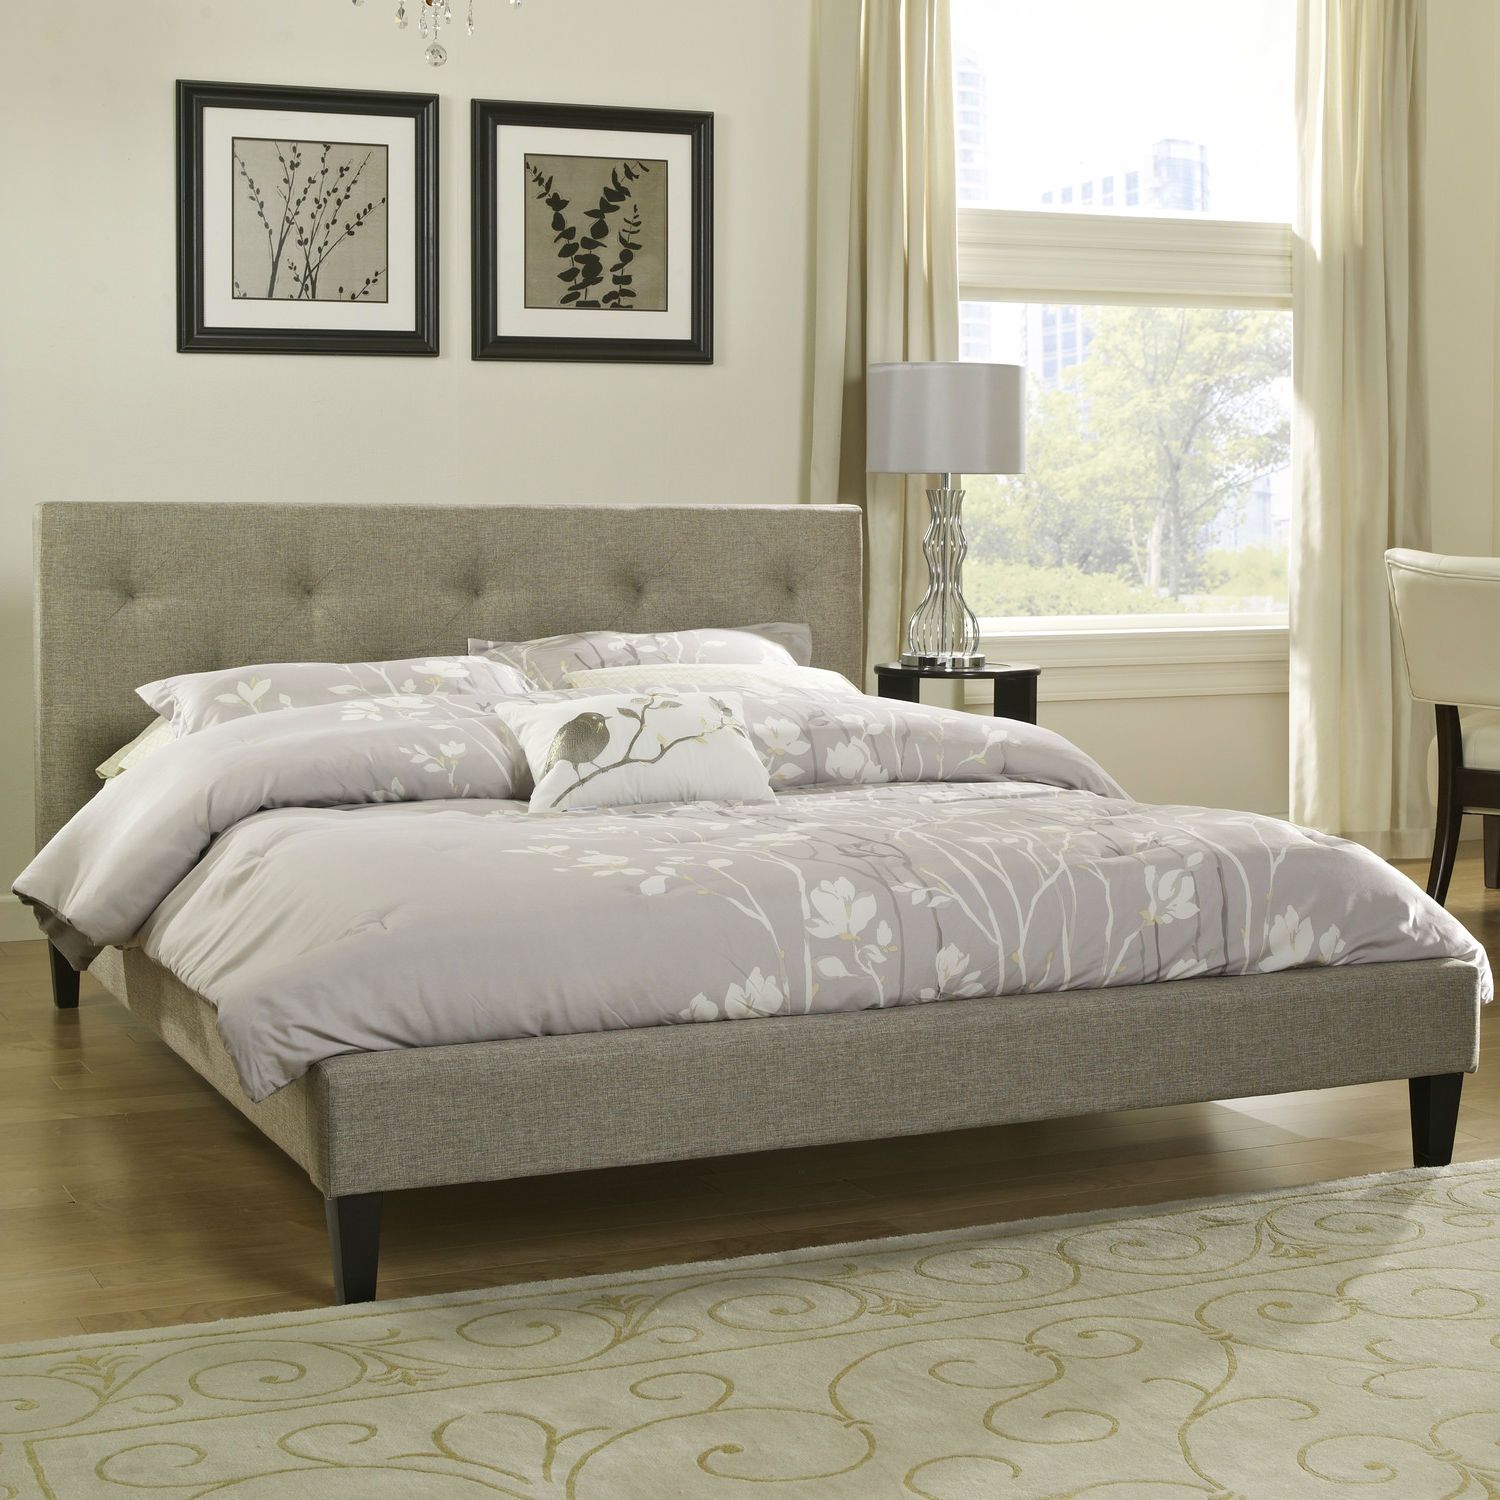 Twin Size Modern Clic Upholstered Platform Bed With Tufted Headboard In Tan Beige